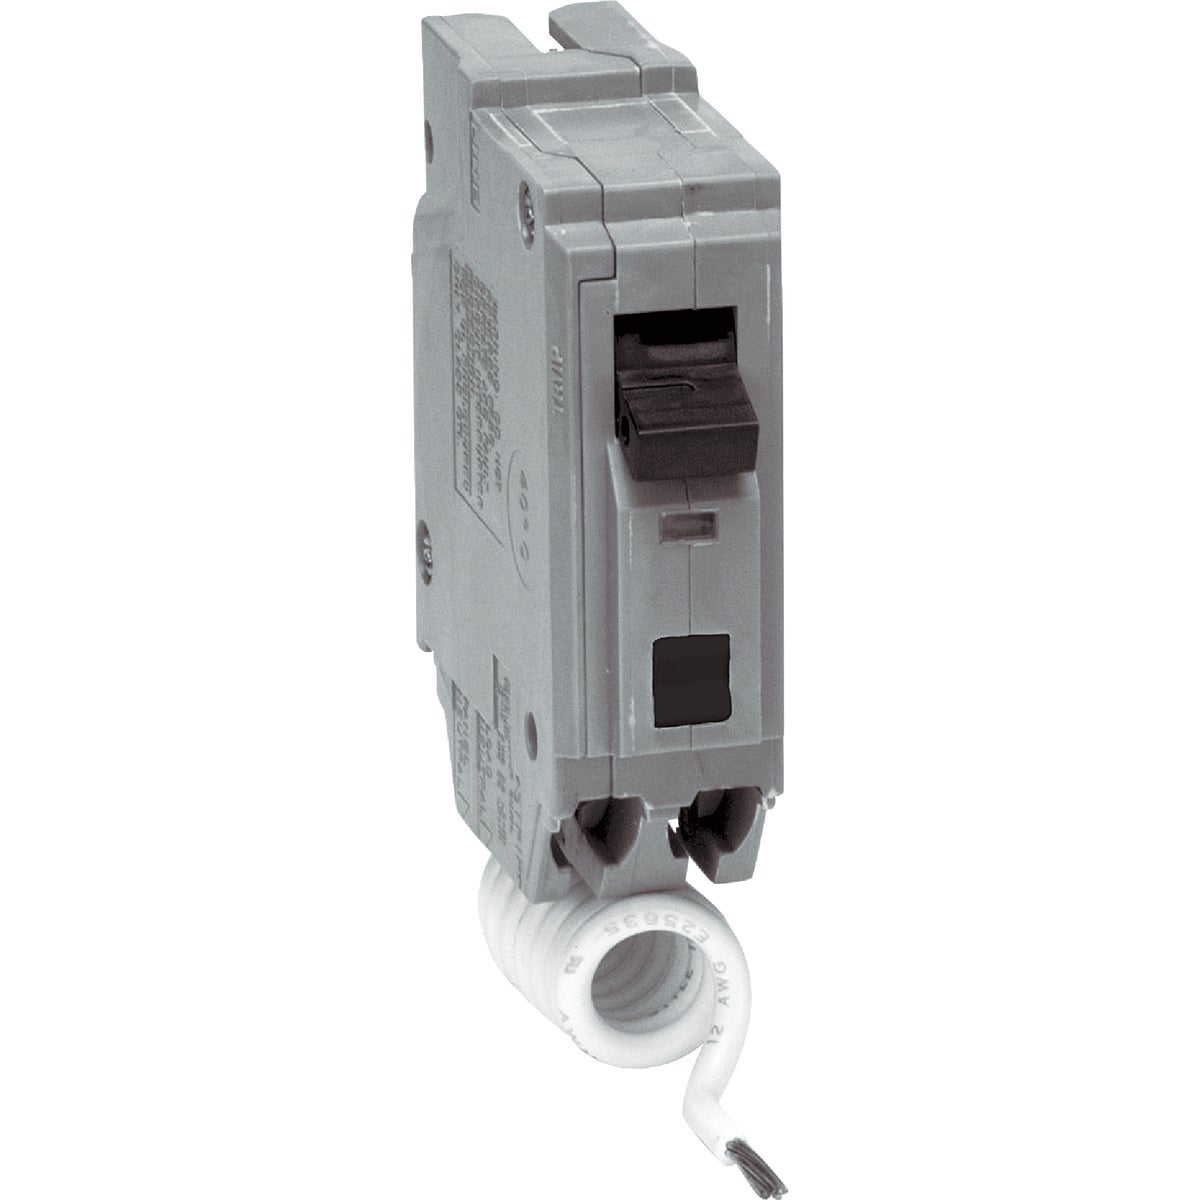 15A ARC FAULT BREAKER - THQL1115AFP2 by G E Industrial